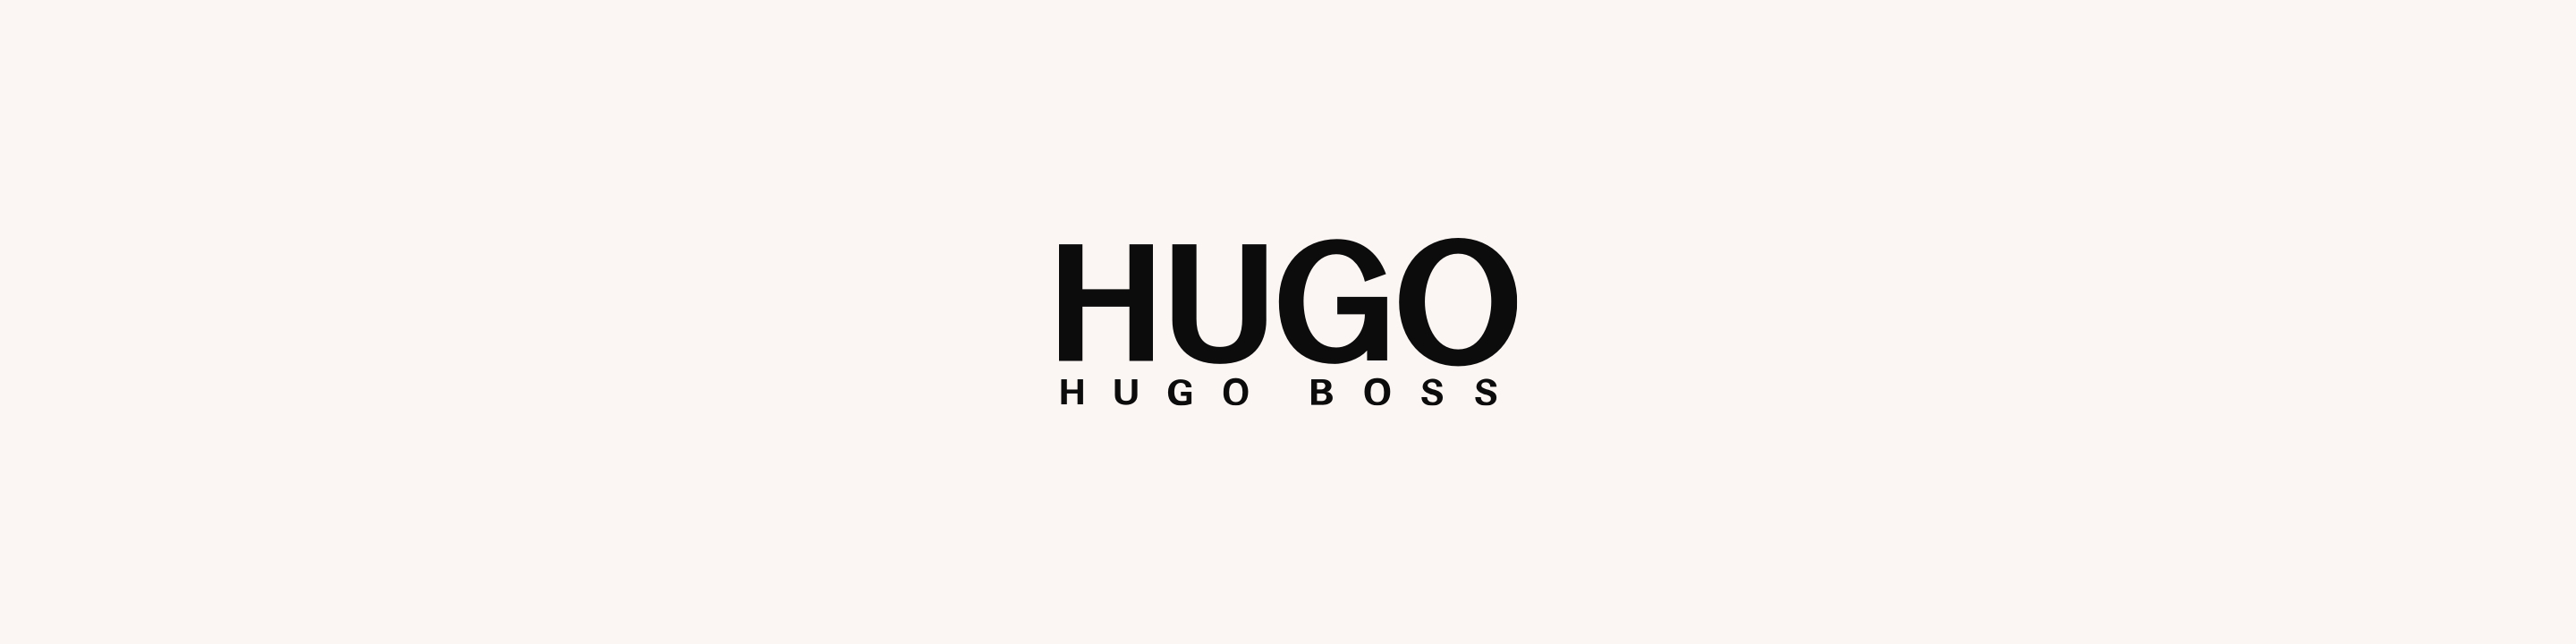 Hugo Boss logo in black sans-serif text against a plain background.